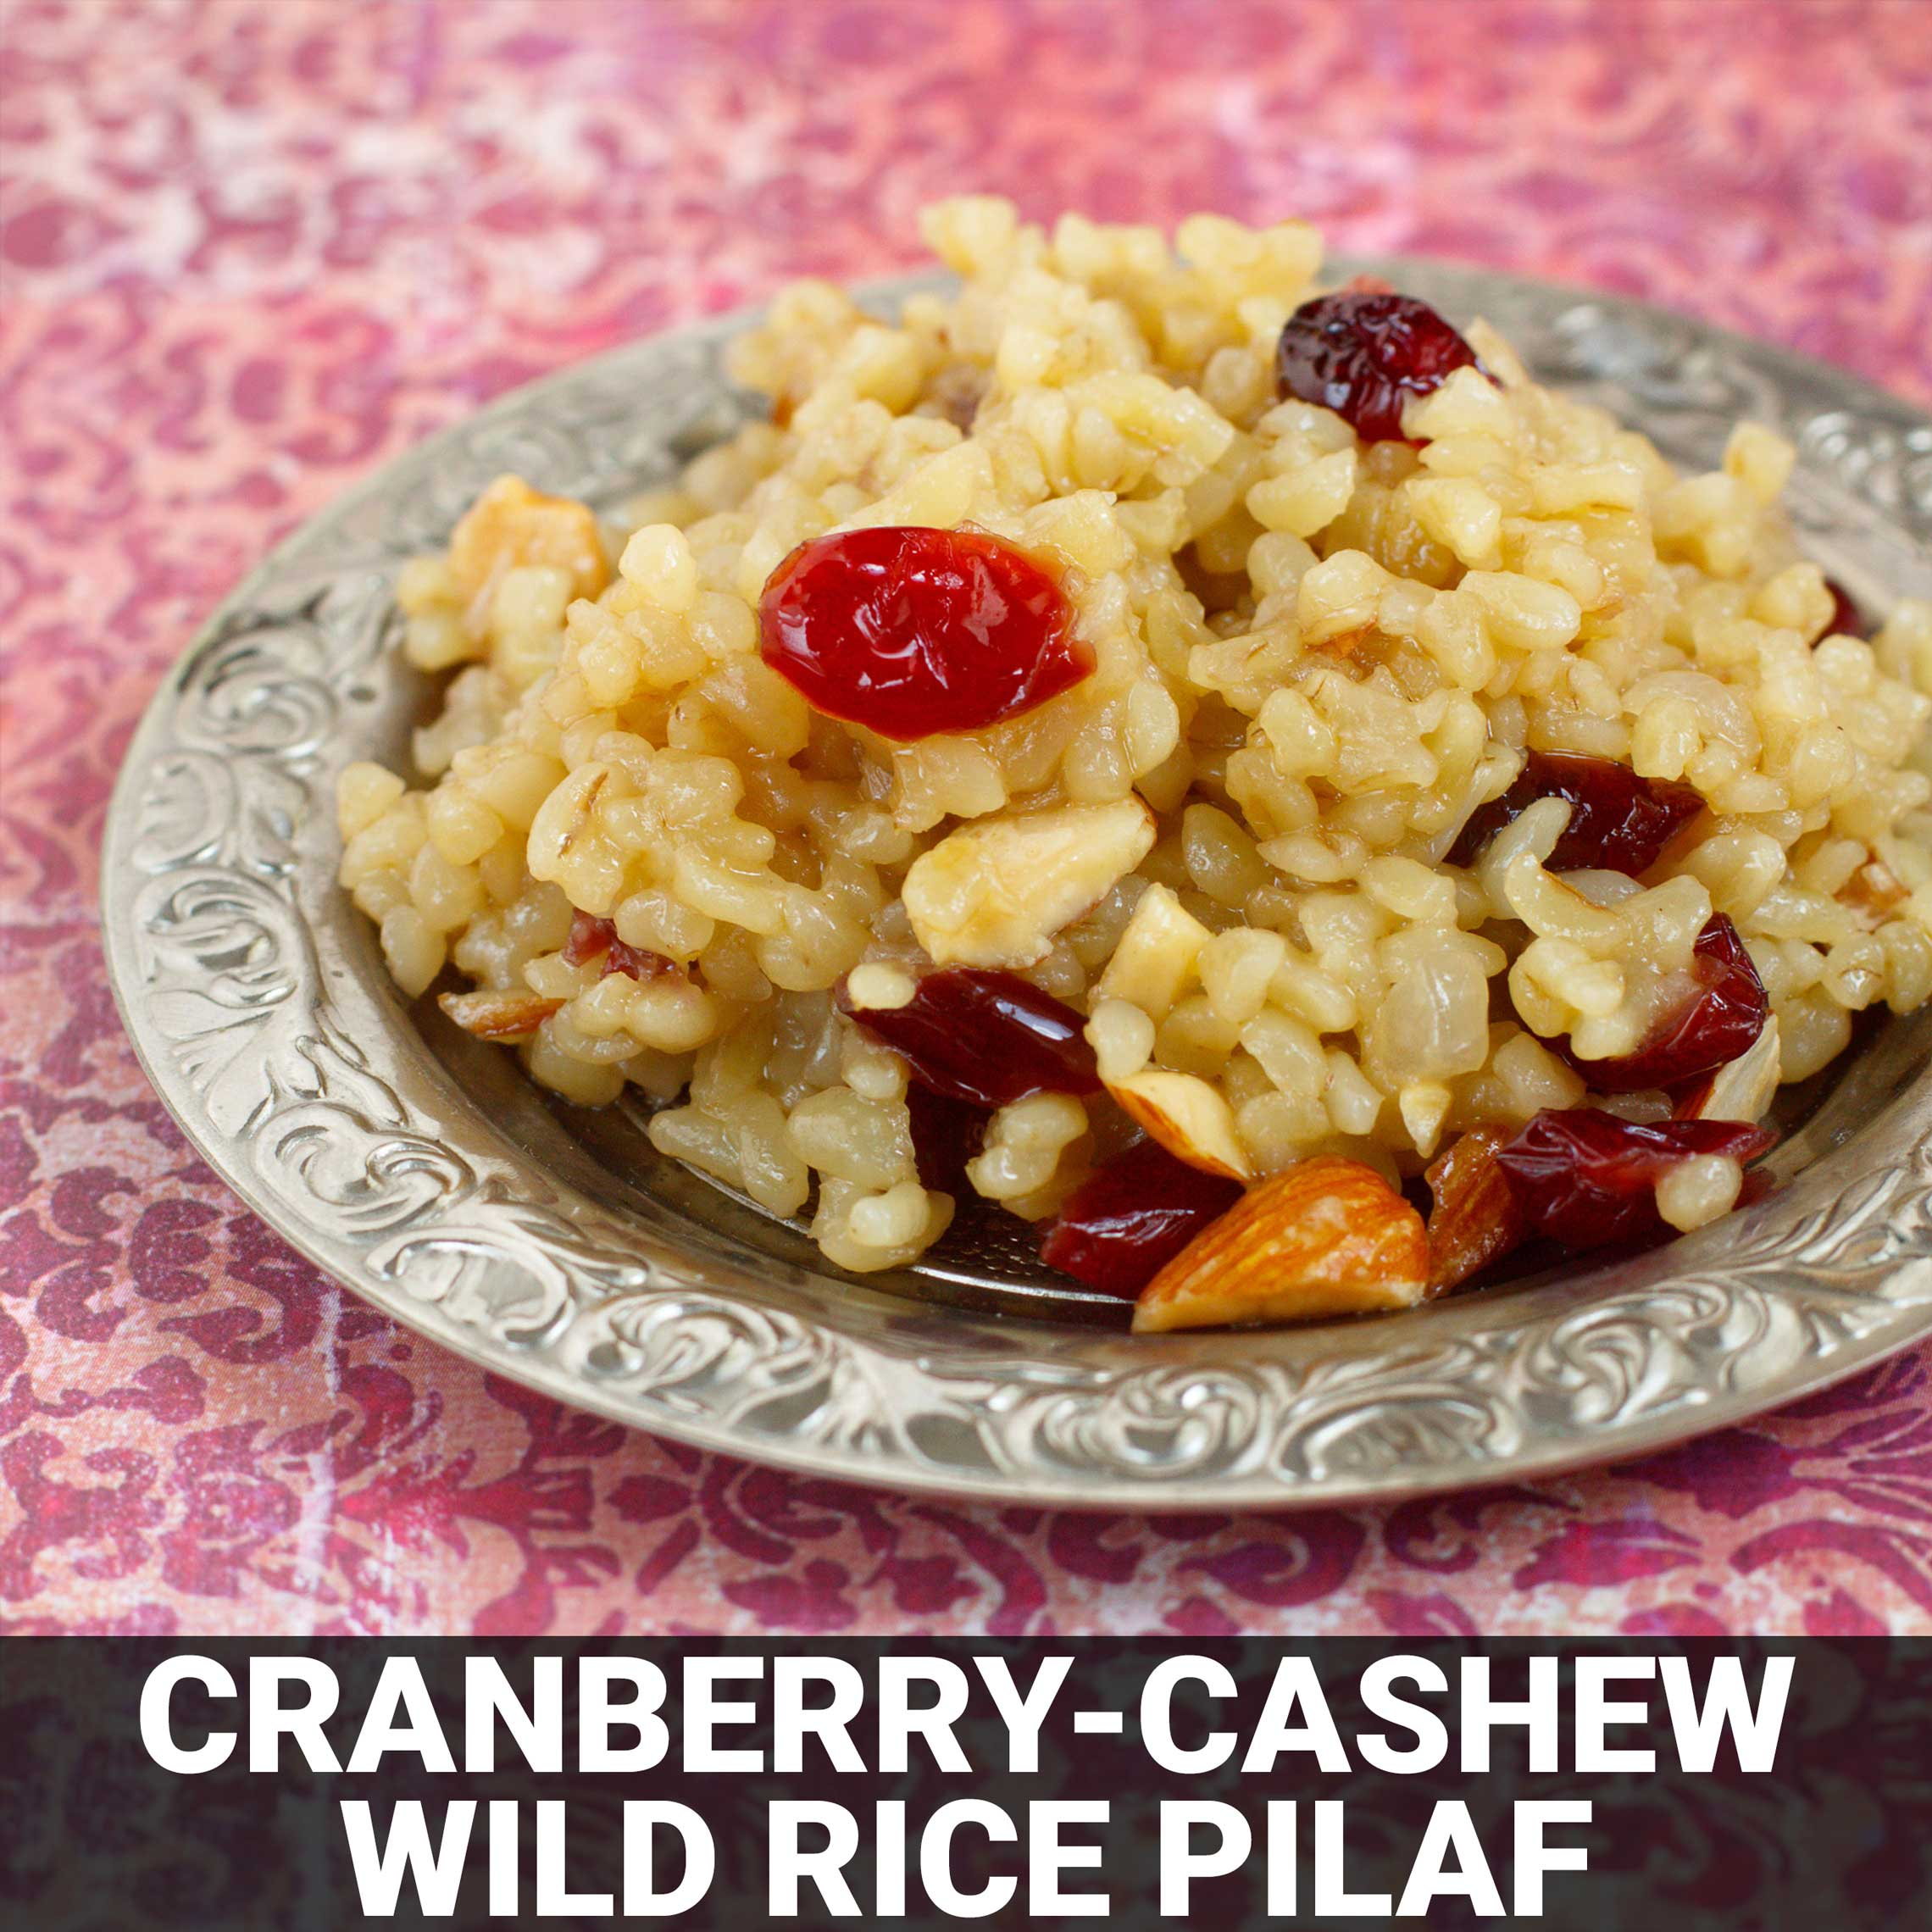 Cranberry-Cashew Wild Rice Pilaf Recipe - Foods Alive